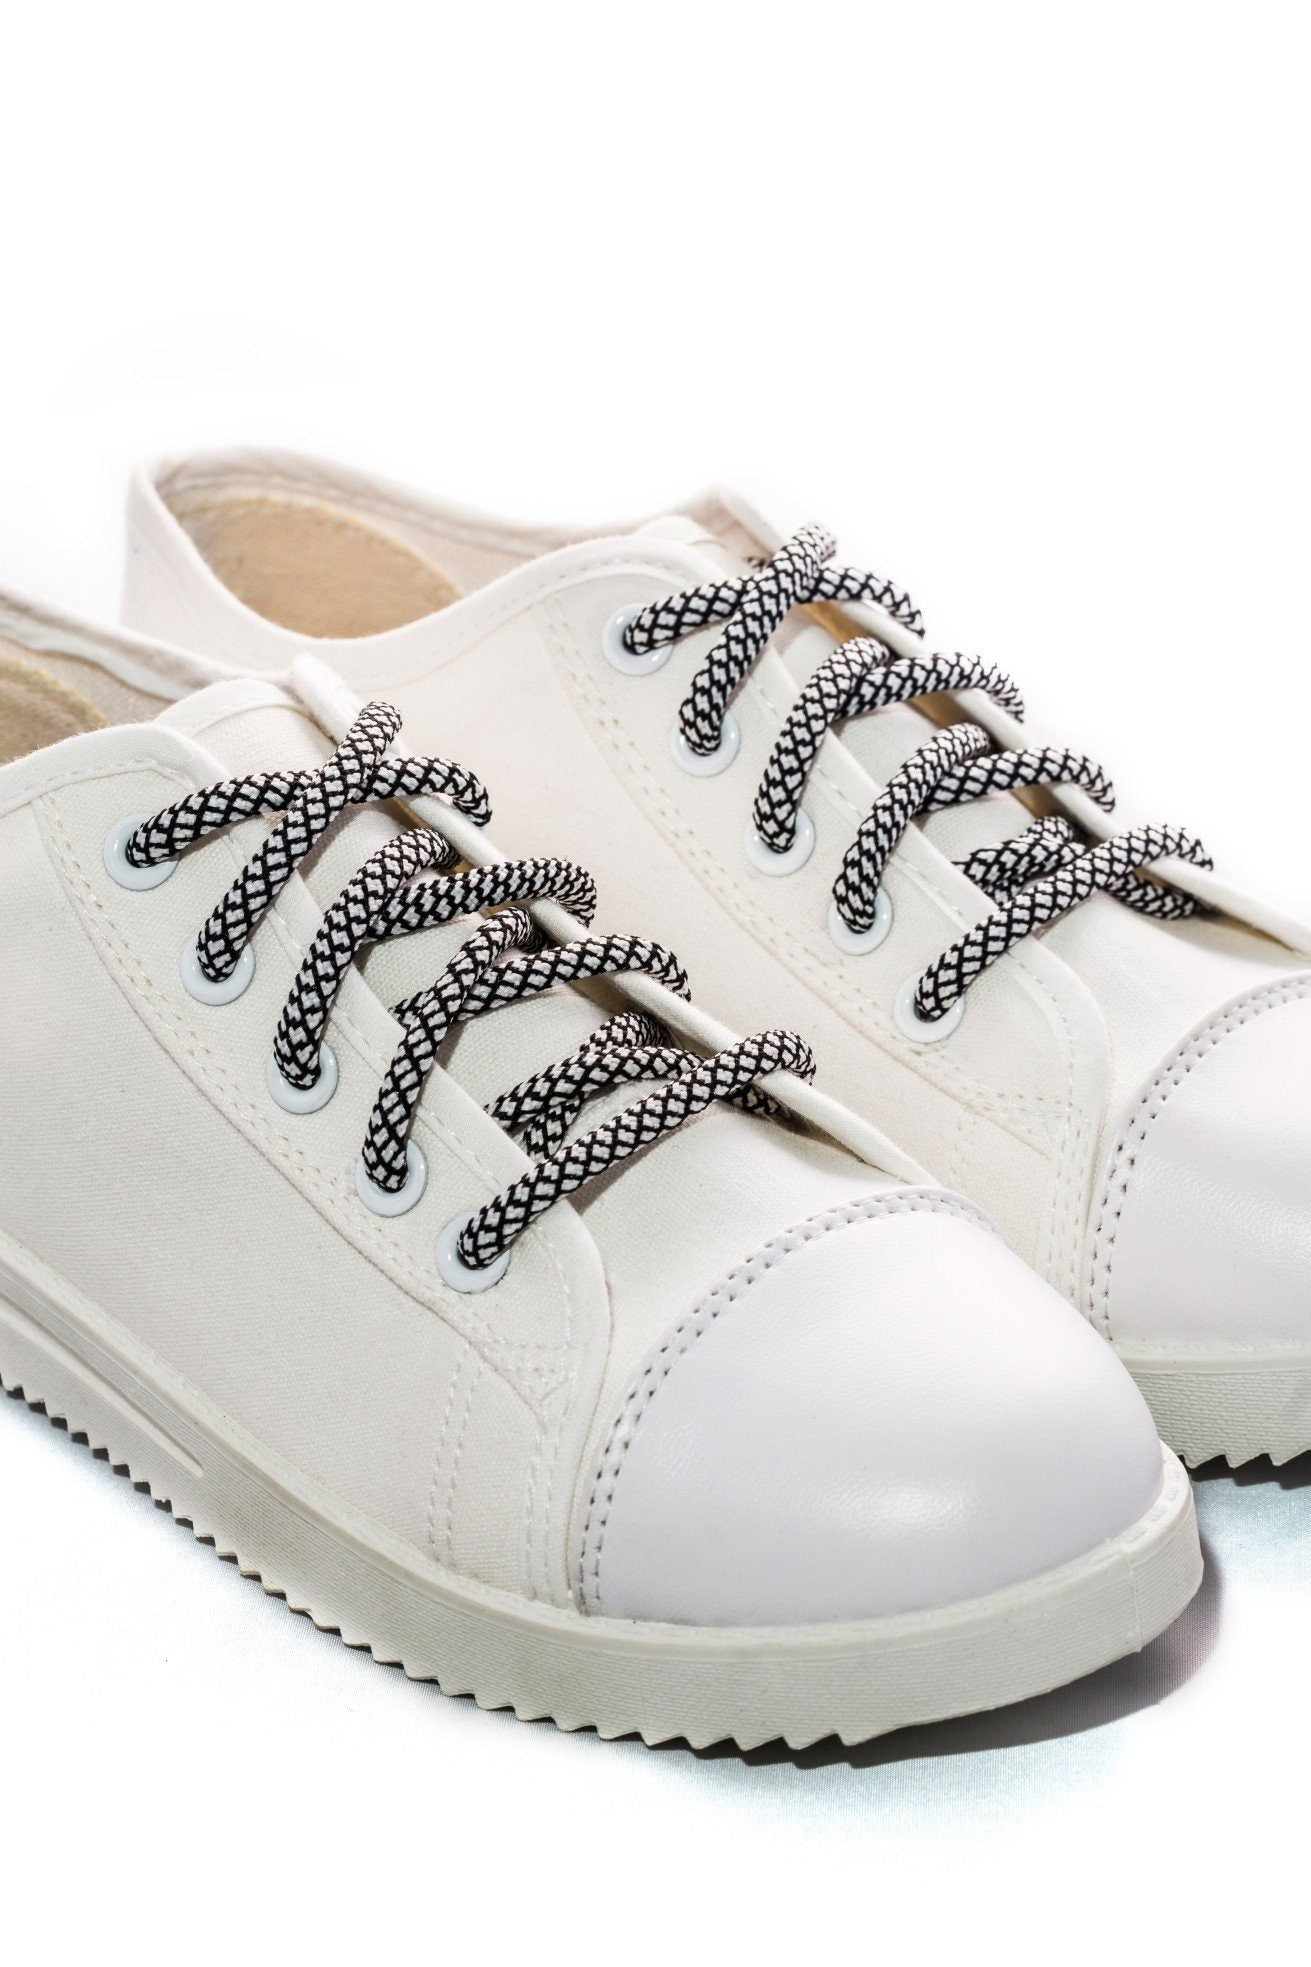 Rope Lace - Shoe Laces - Crosslace - Naiise